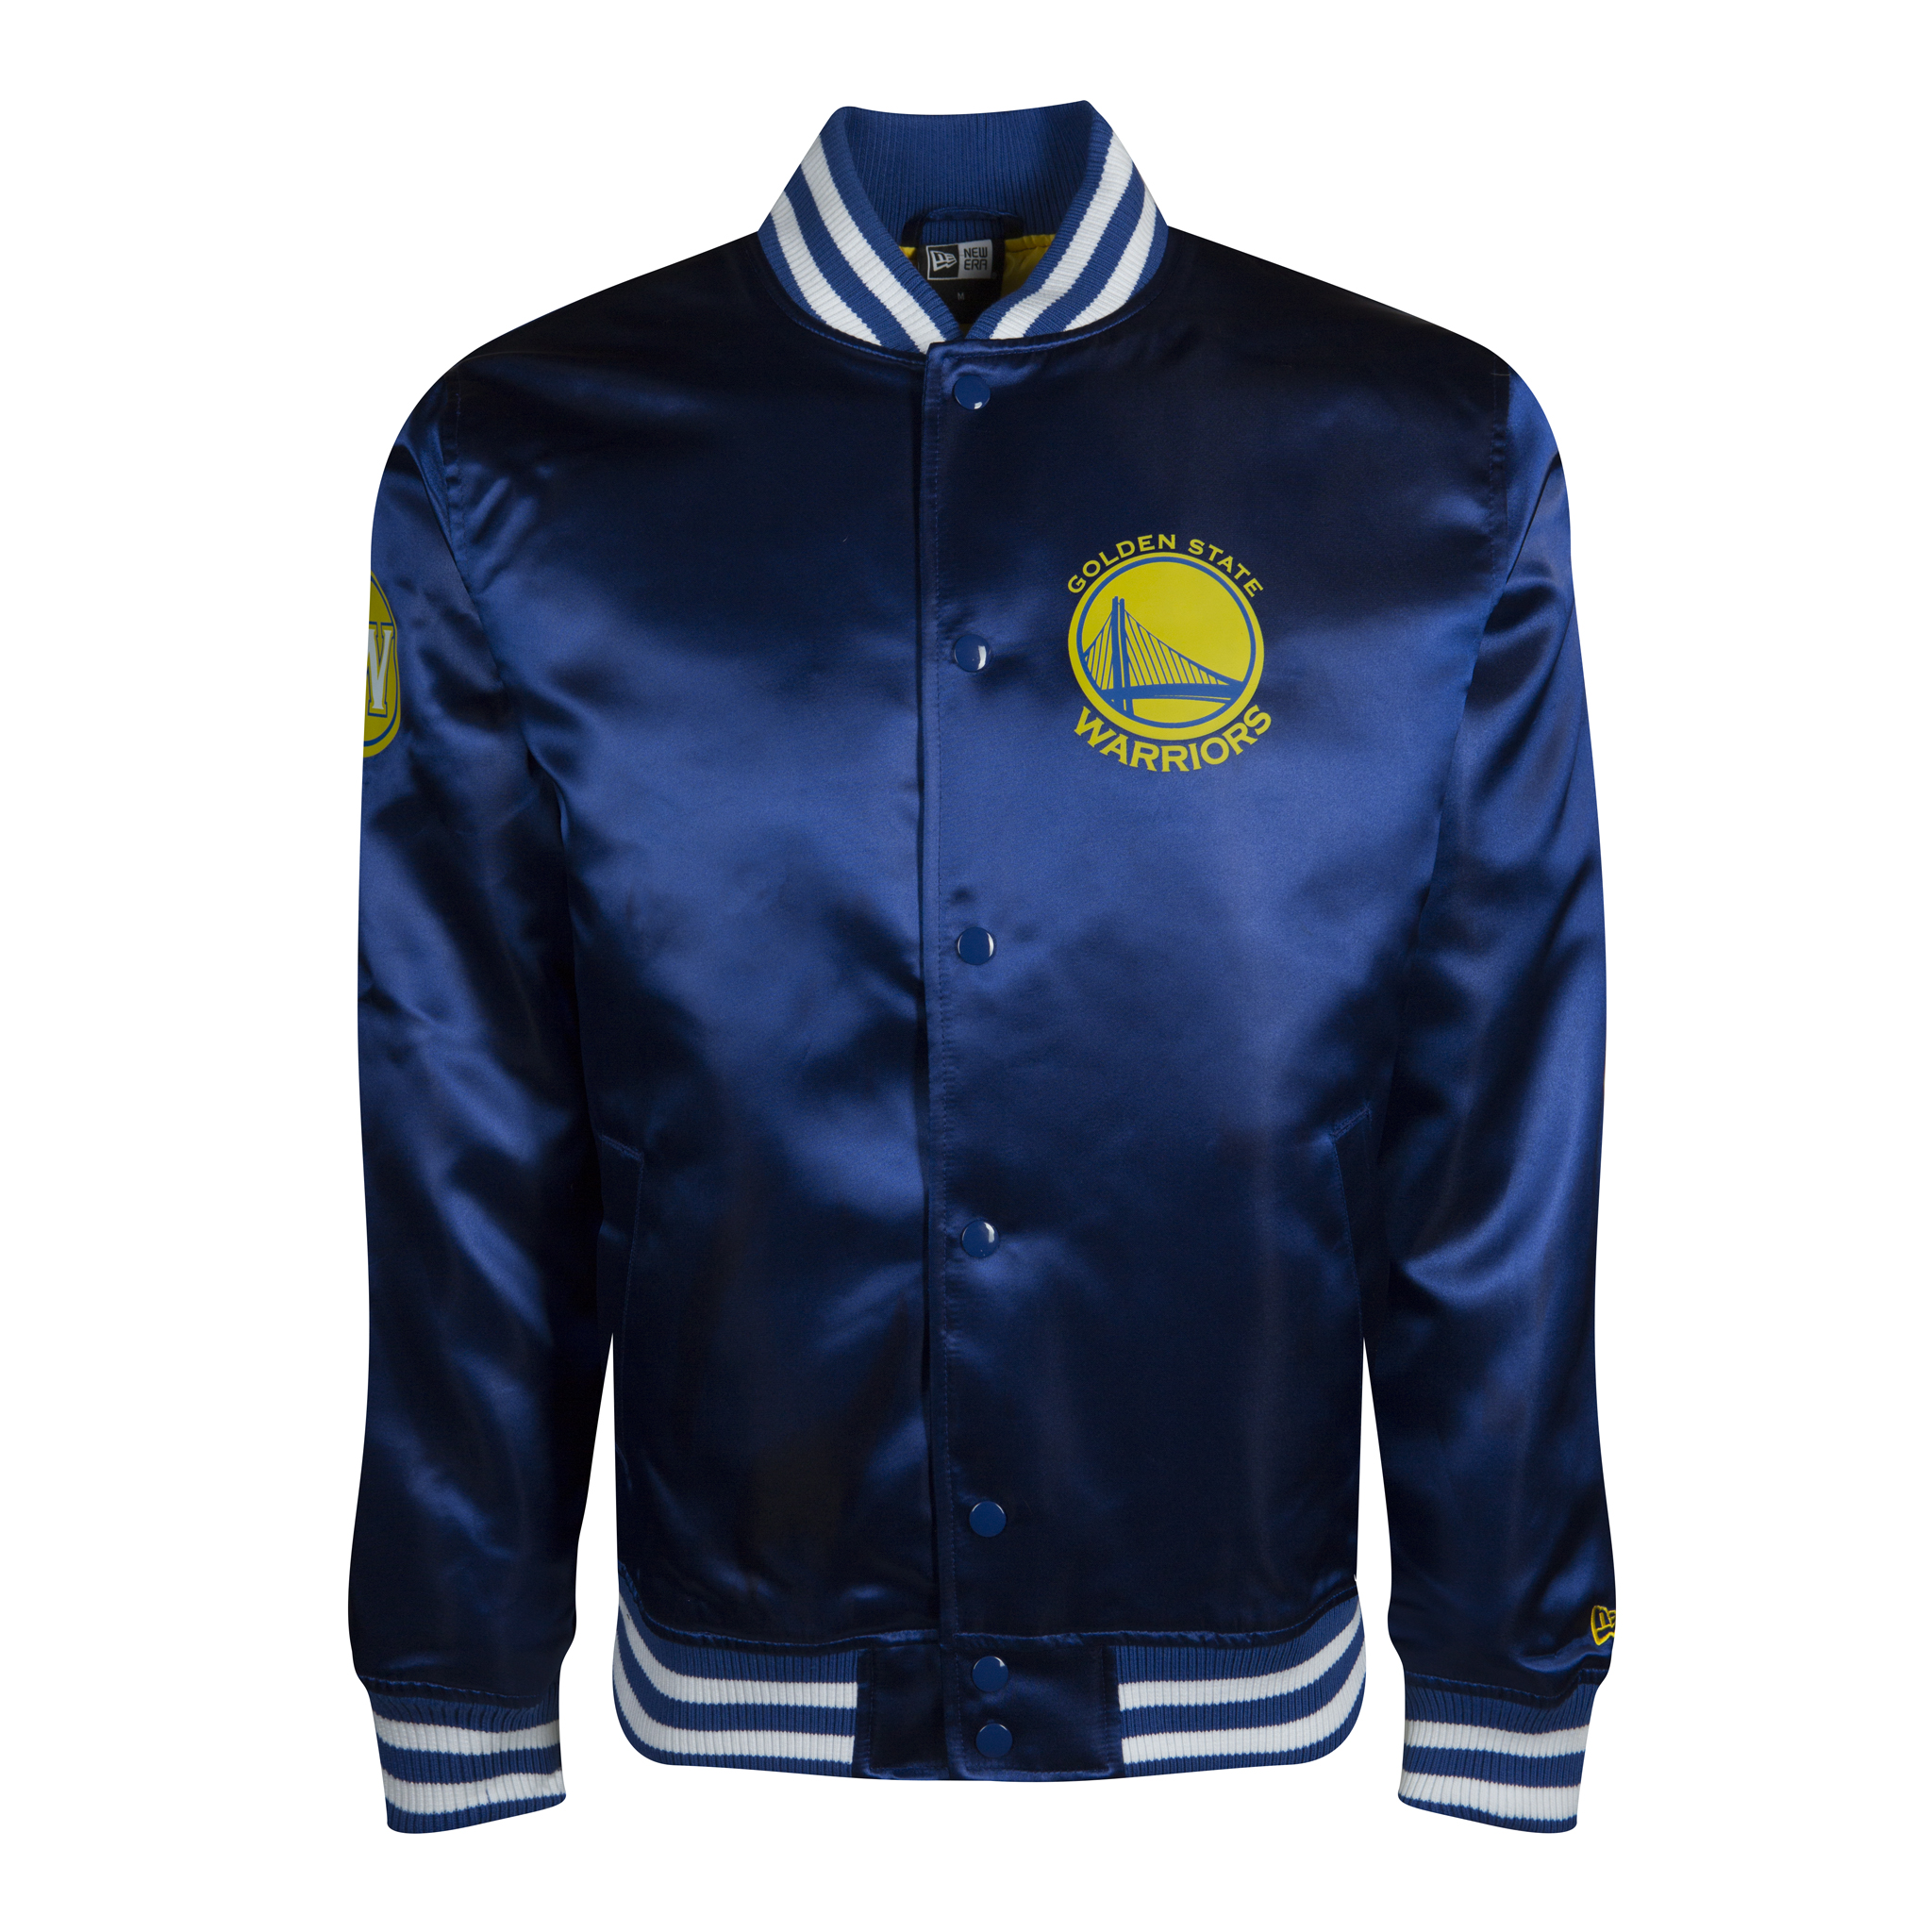 GOLDEN STATE WARRIORS SATEEN VARSITY JACKET